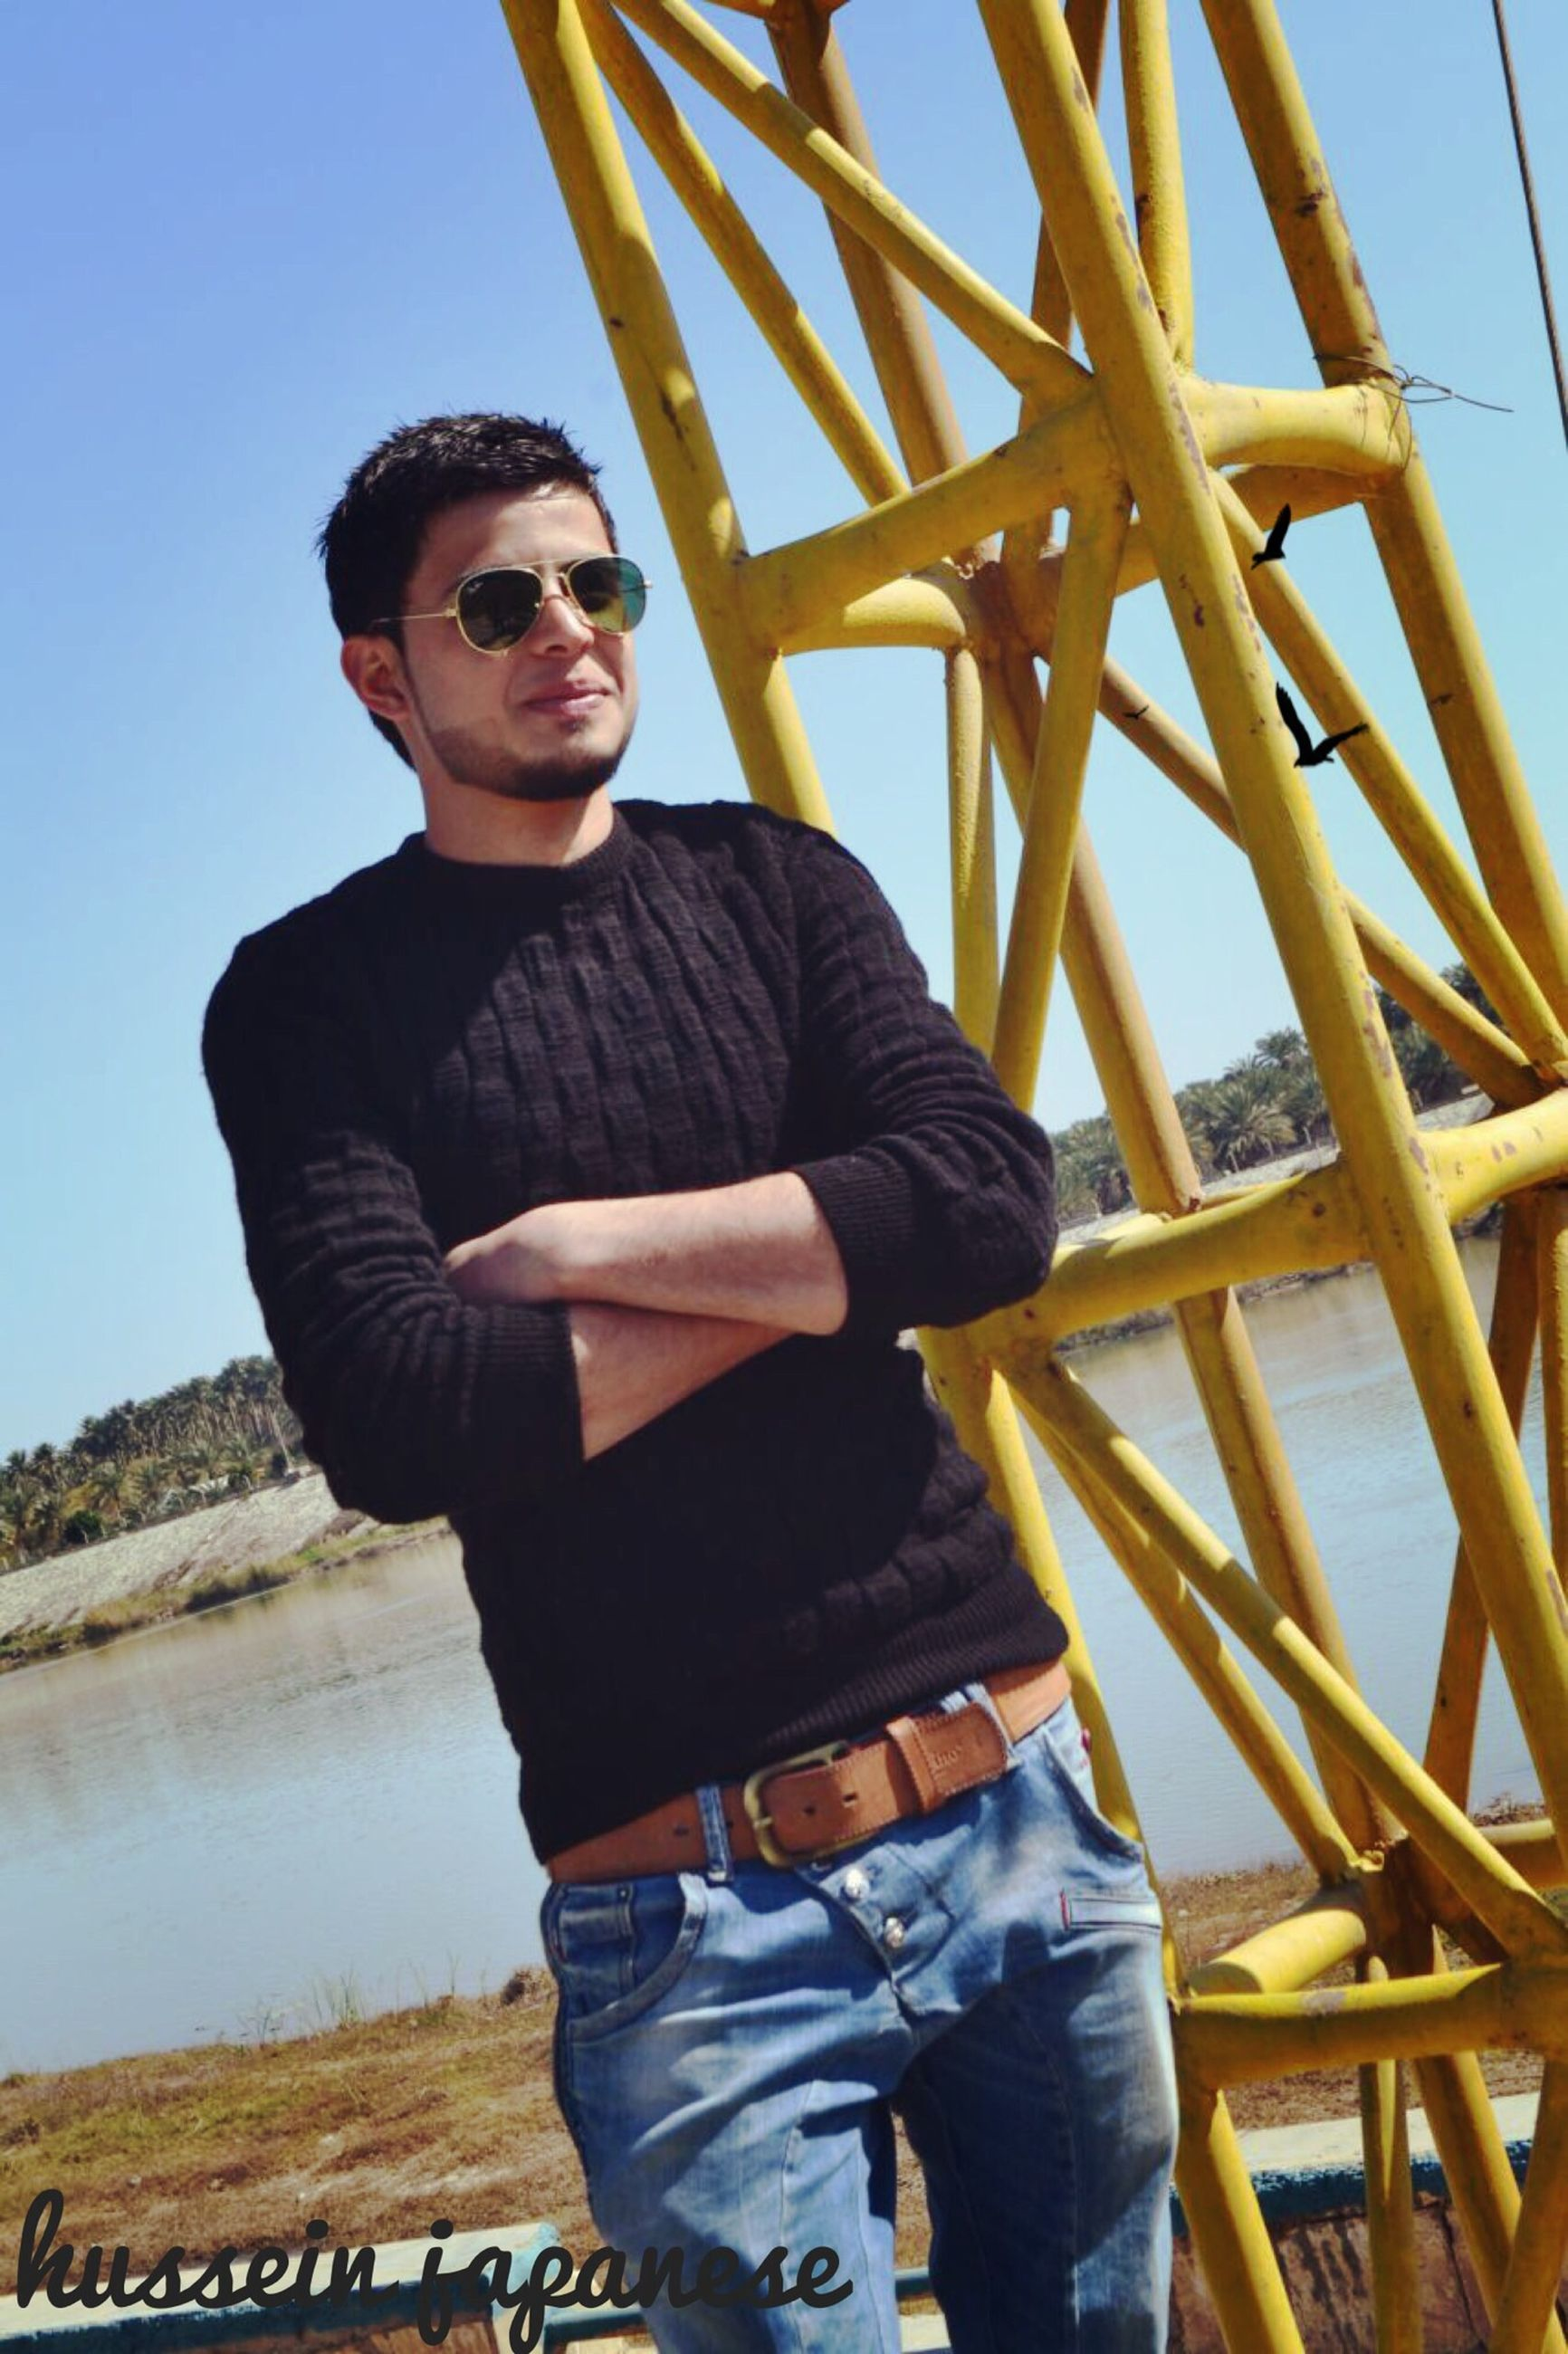 casual clothing, lifestyles, leisure activity, person, standing, young adult, three quarter length, portrait, looking at camera, full length, front view, clear sky, smiling, young men, sky, sitting